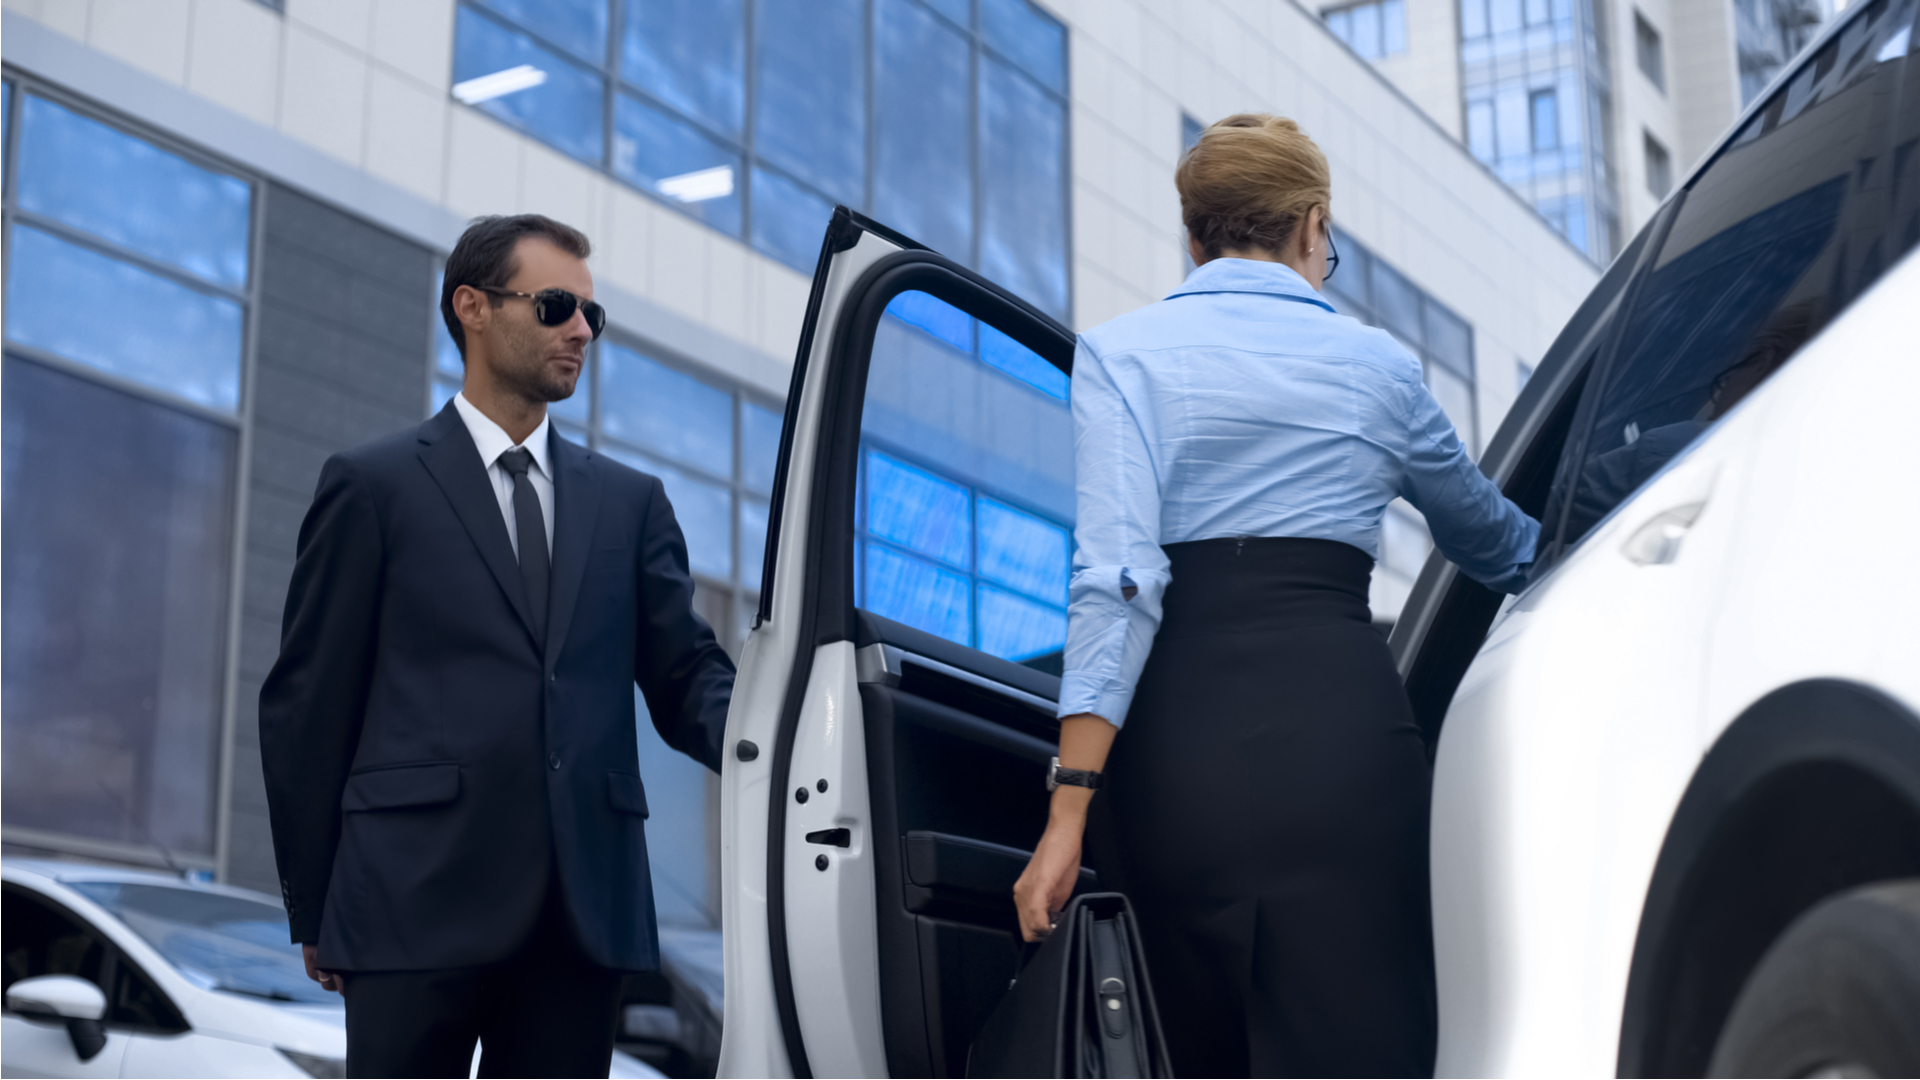 Business & Commercial Vehicle Insurance Header Image